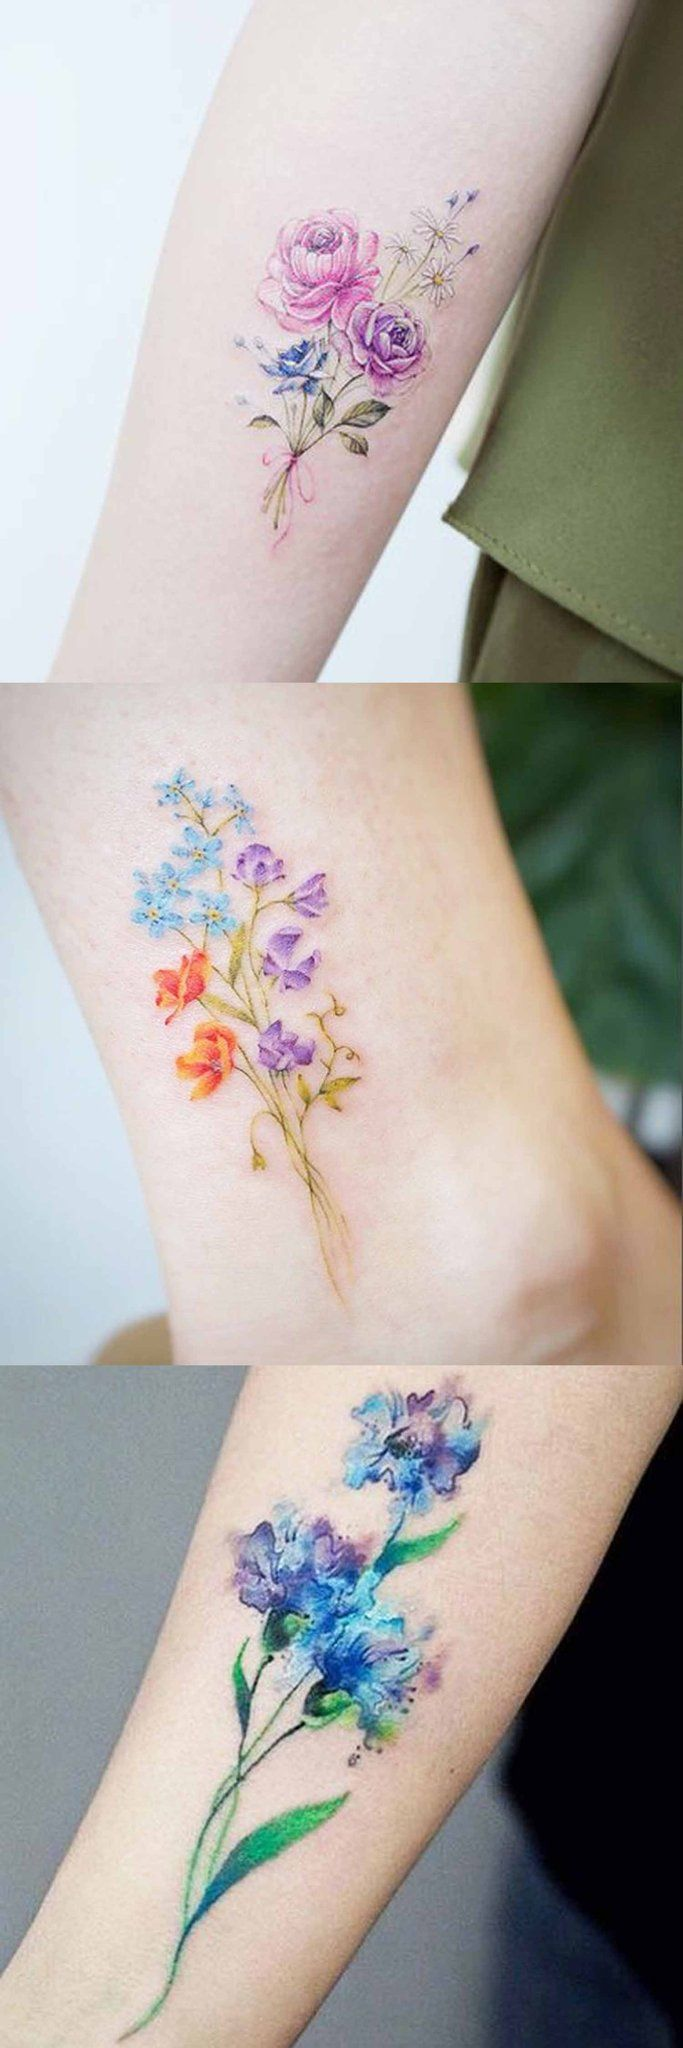 Small Tiny Floral Flower Tattoo Ideas At MyBodiArt.com